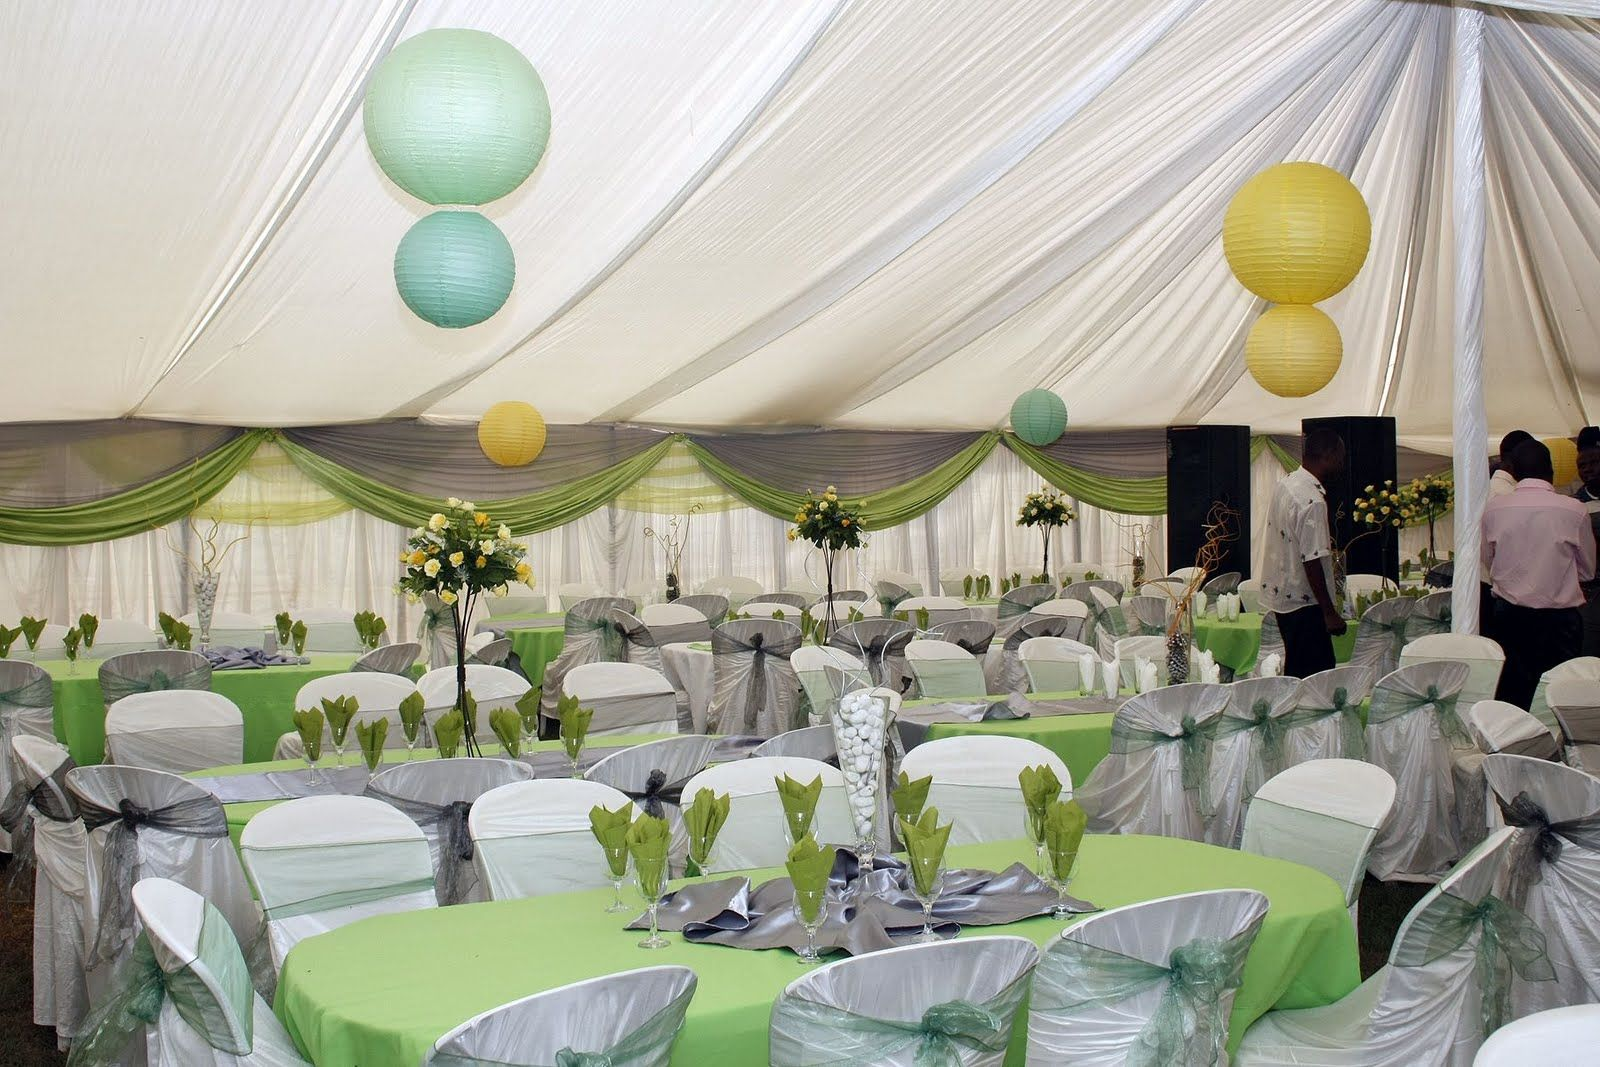 Garden wedding reception decoration ideas how to make for Home decorations for wedding